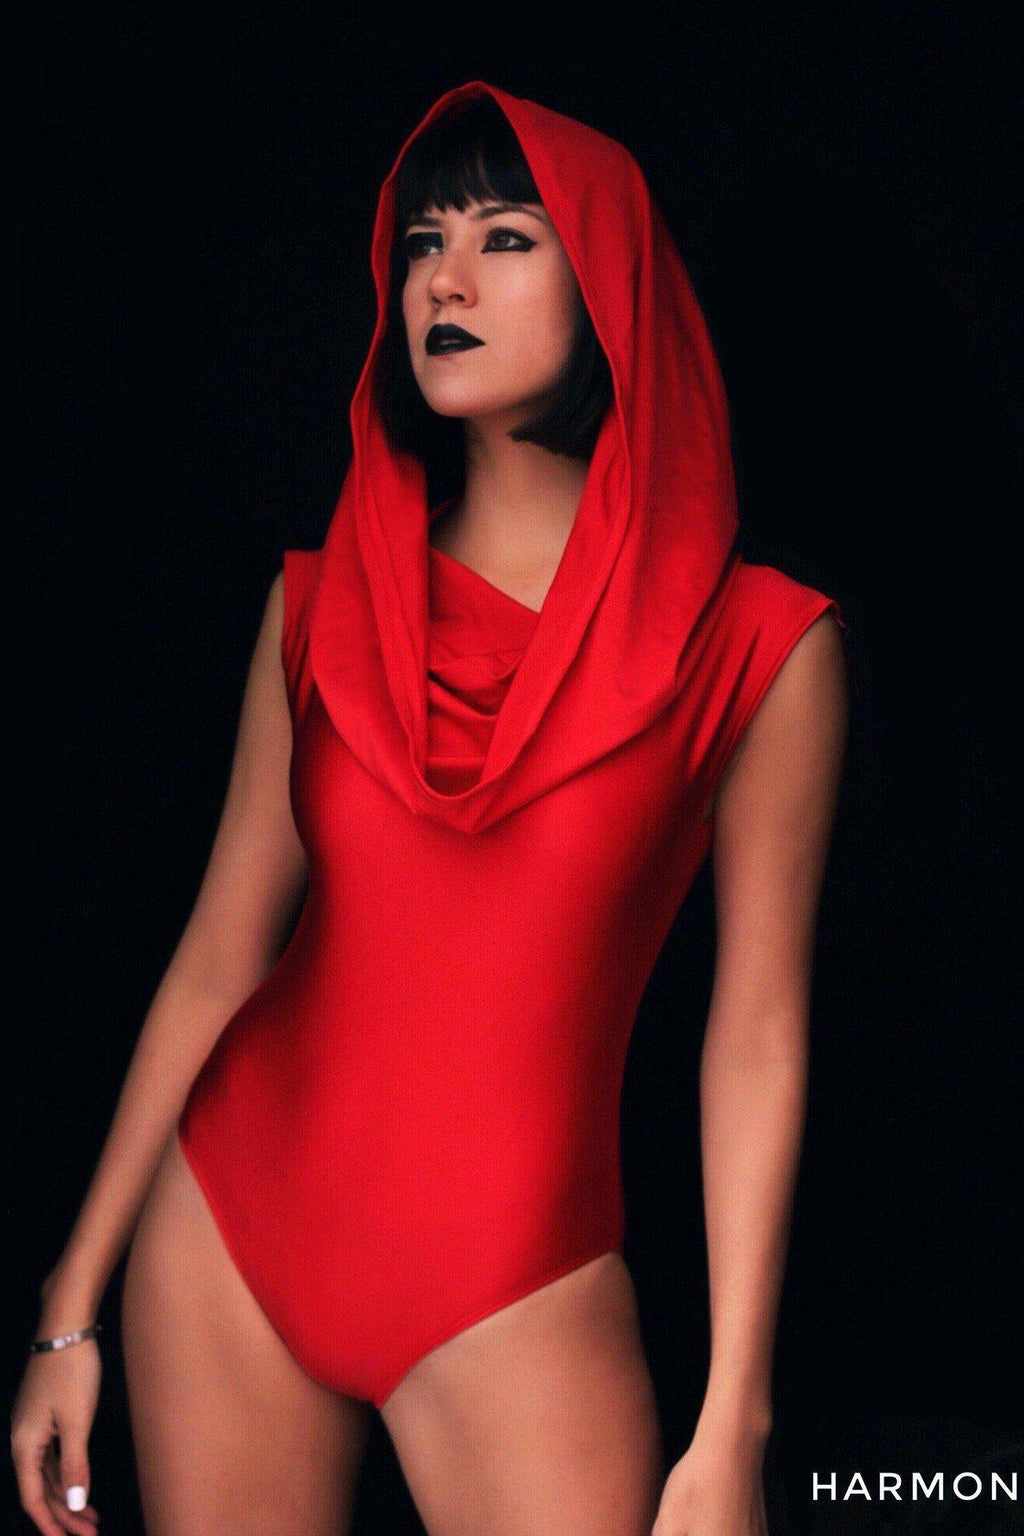 GALACTIKA metallic hooded bodysuit-costumes-Harmonia-burning man-burning man costumes-festival outfits-halloween costumes-Harmonia